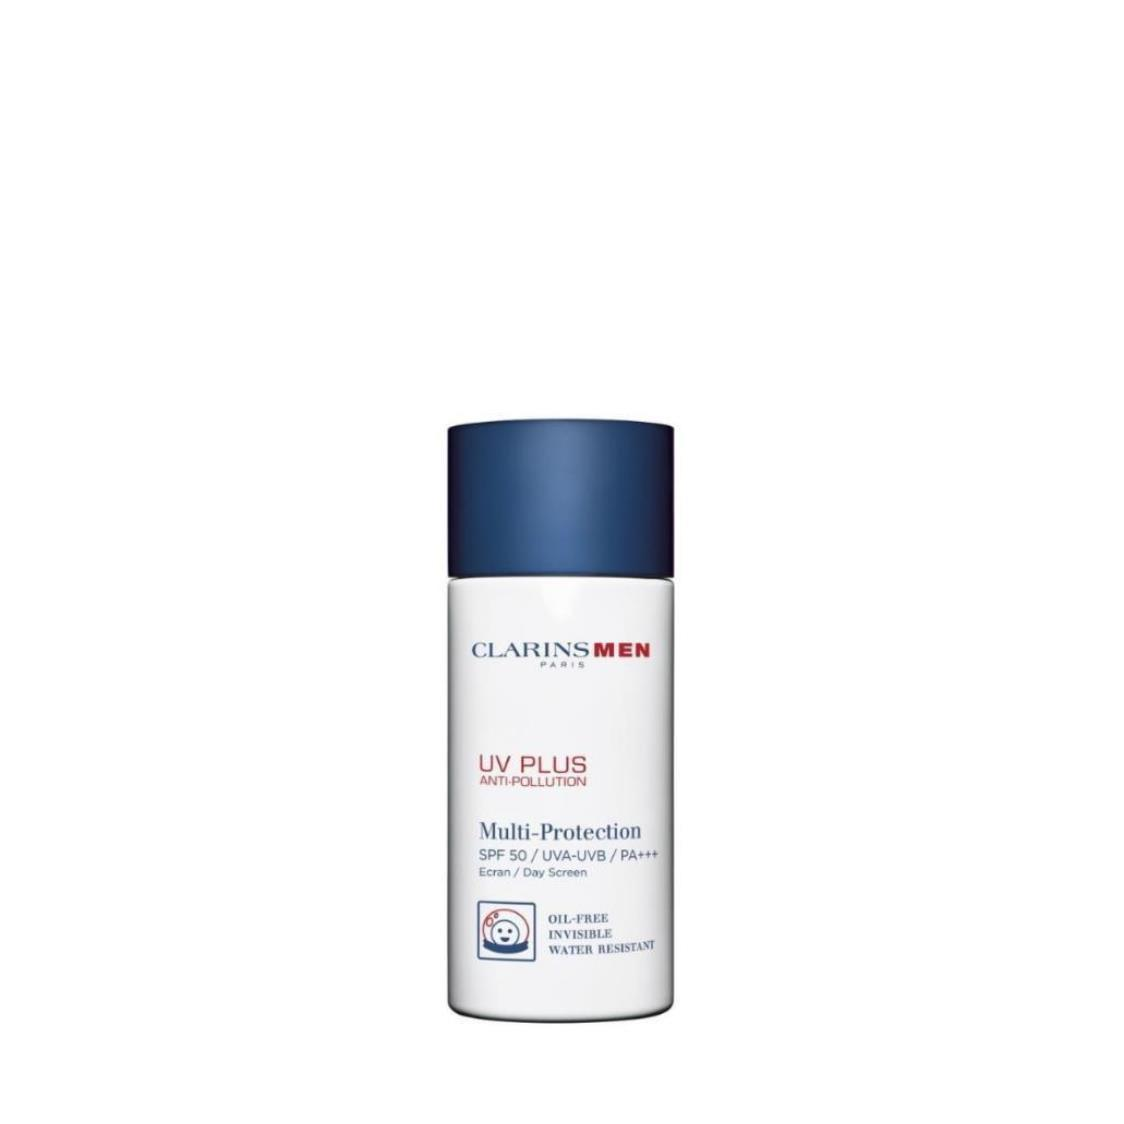 ClarinsMen UV Plus Anti-Pollution 50ml